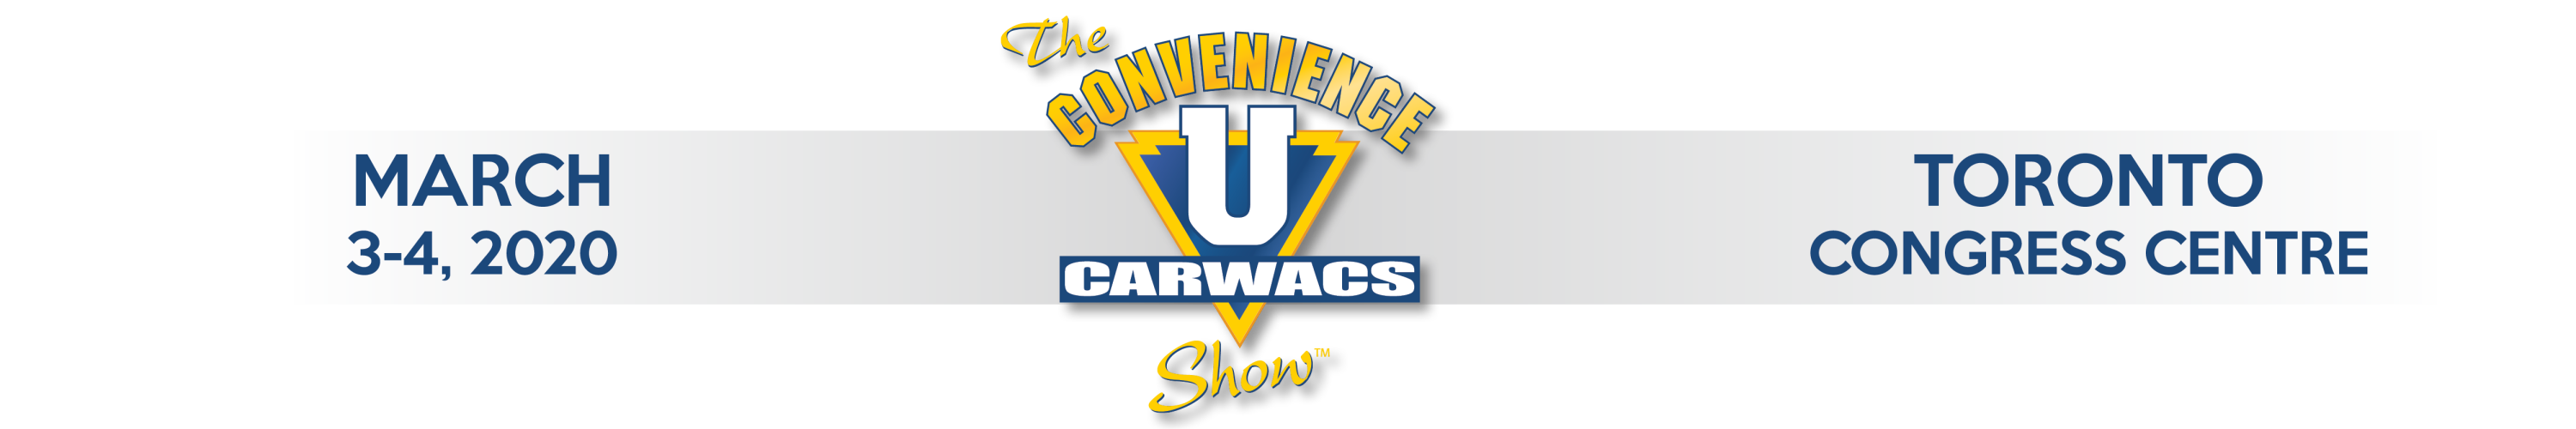 TEST INGO - The Convenience U CARWACS Show Toronto 2020